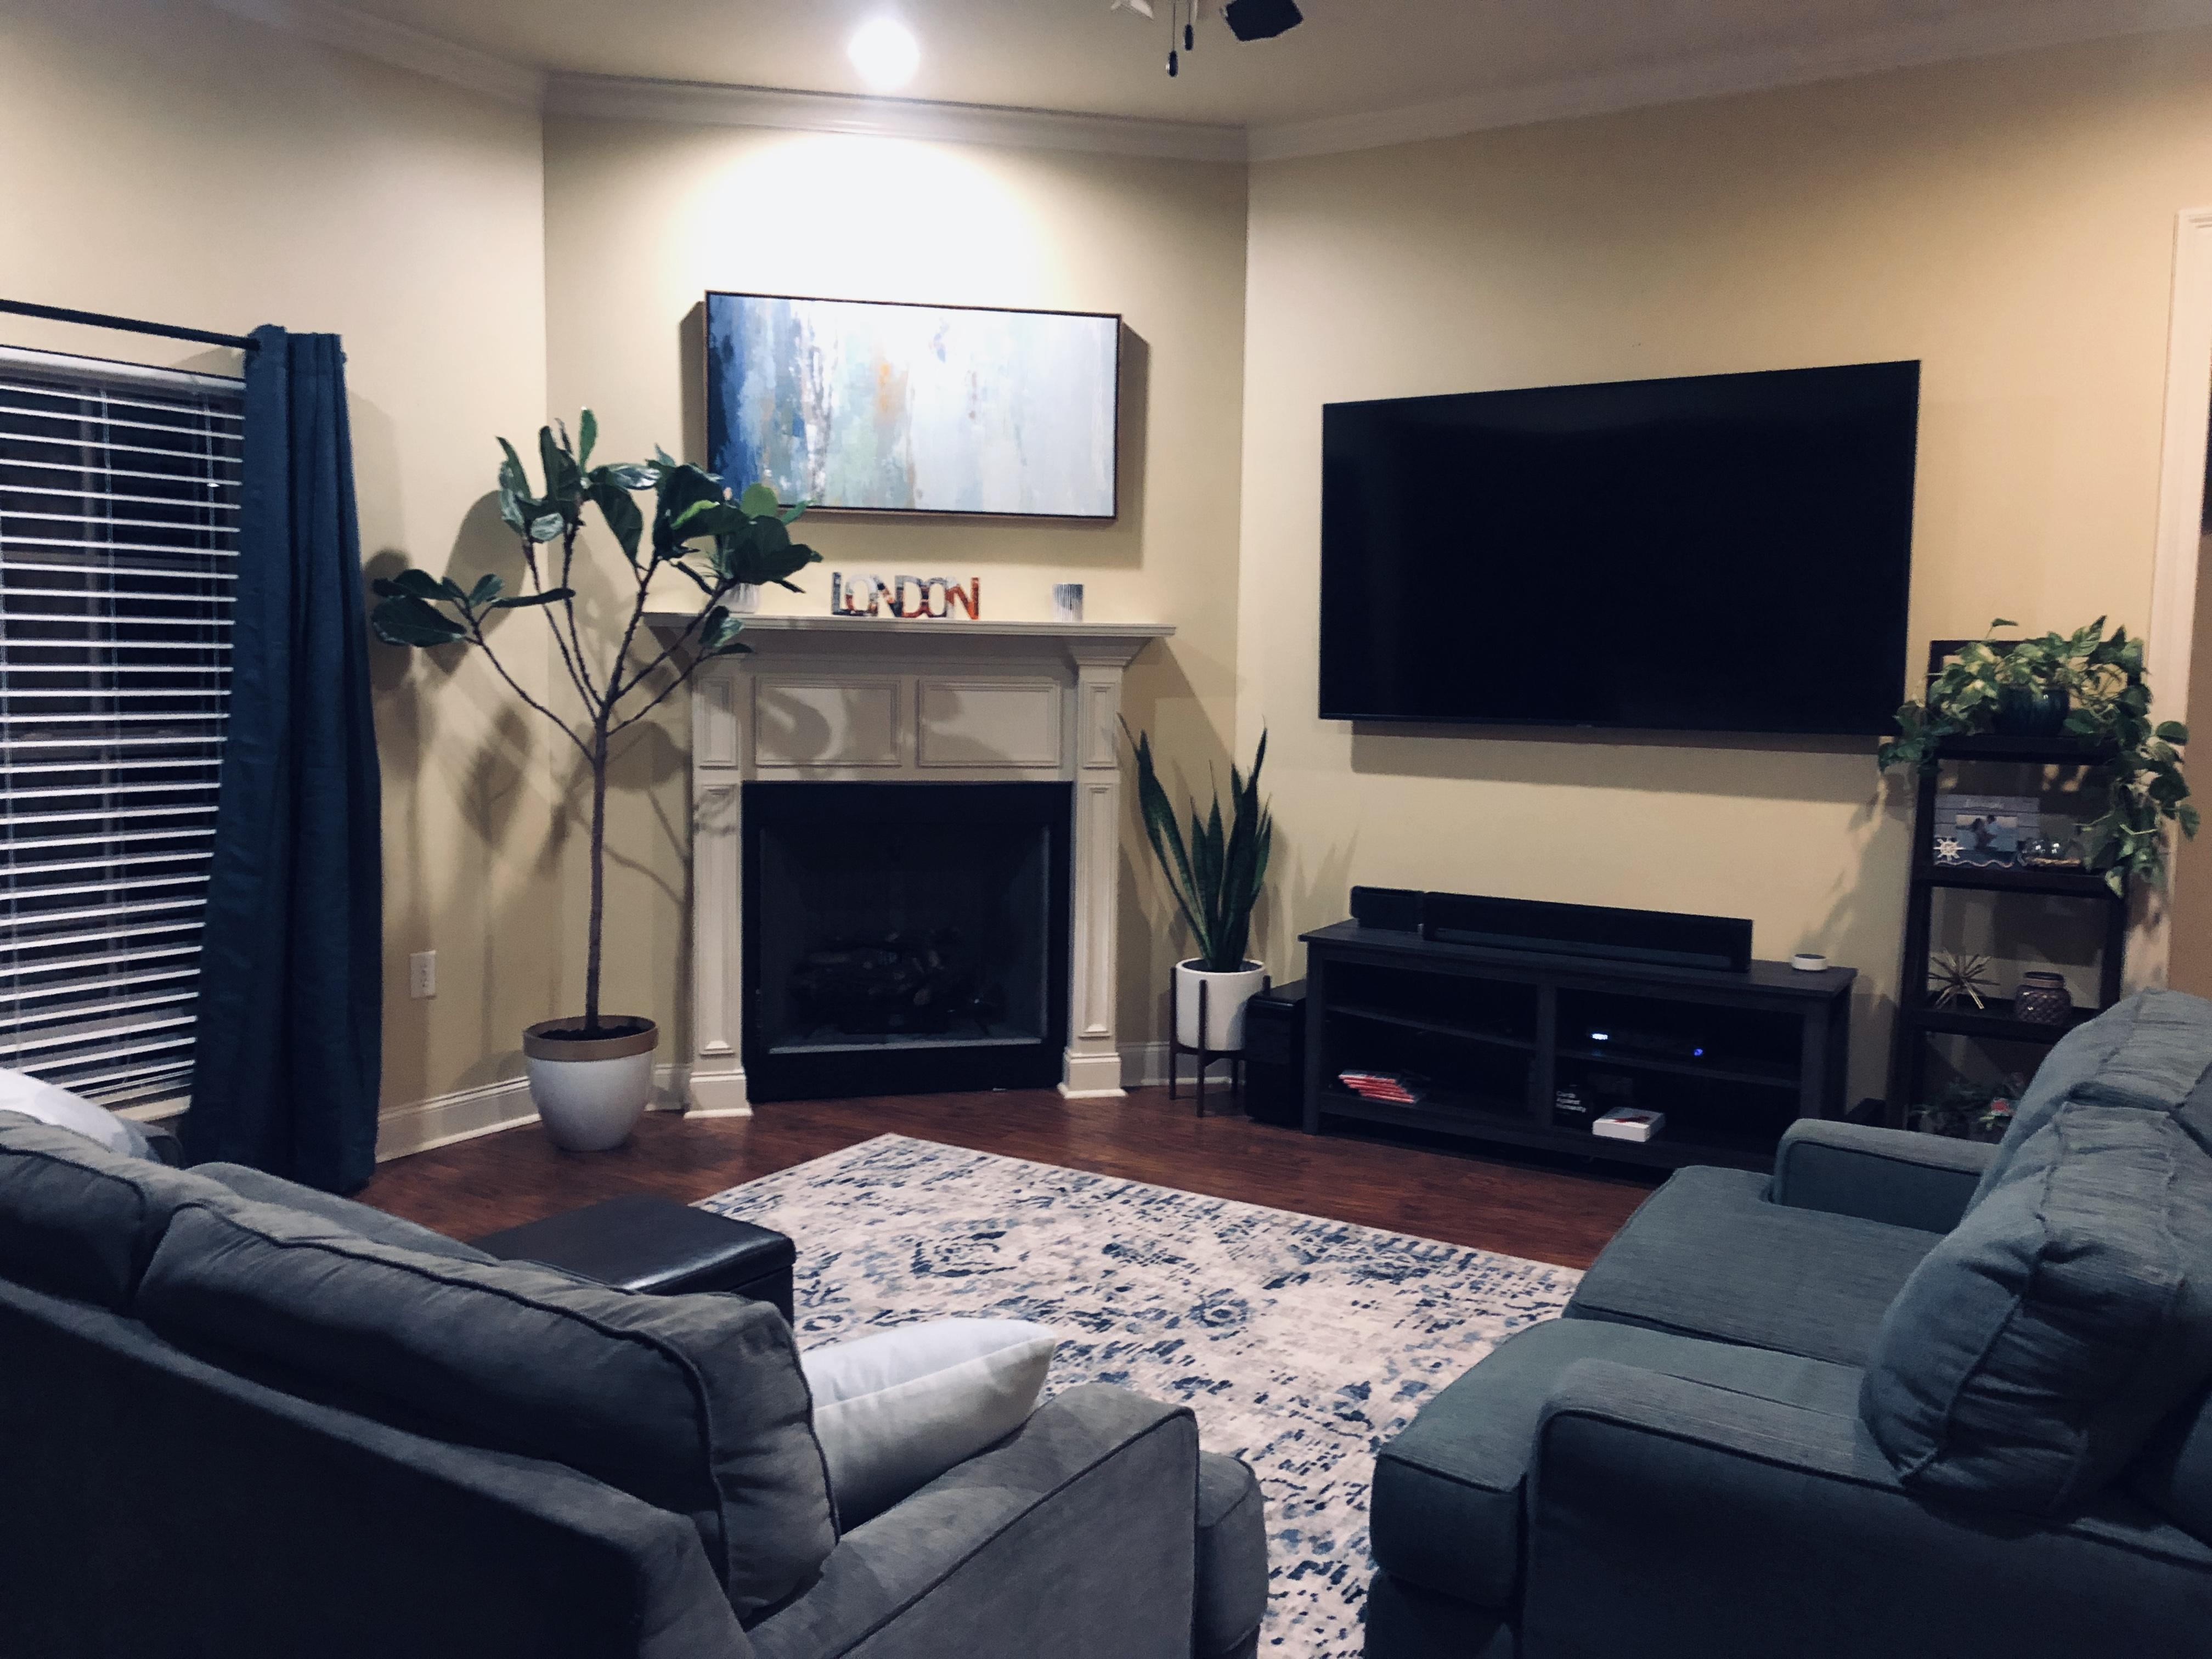 new living room set up thoughts